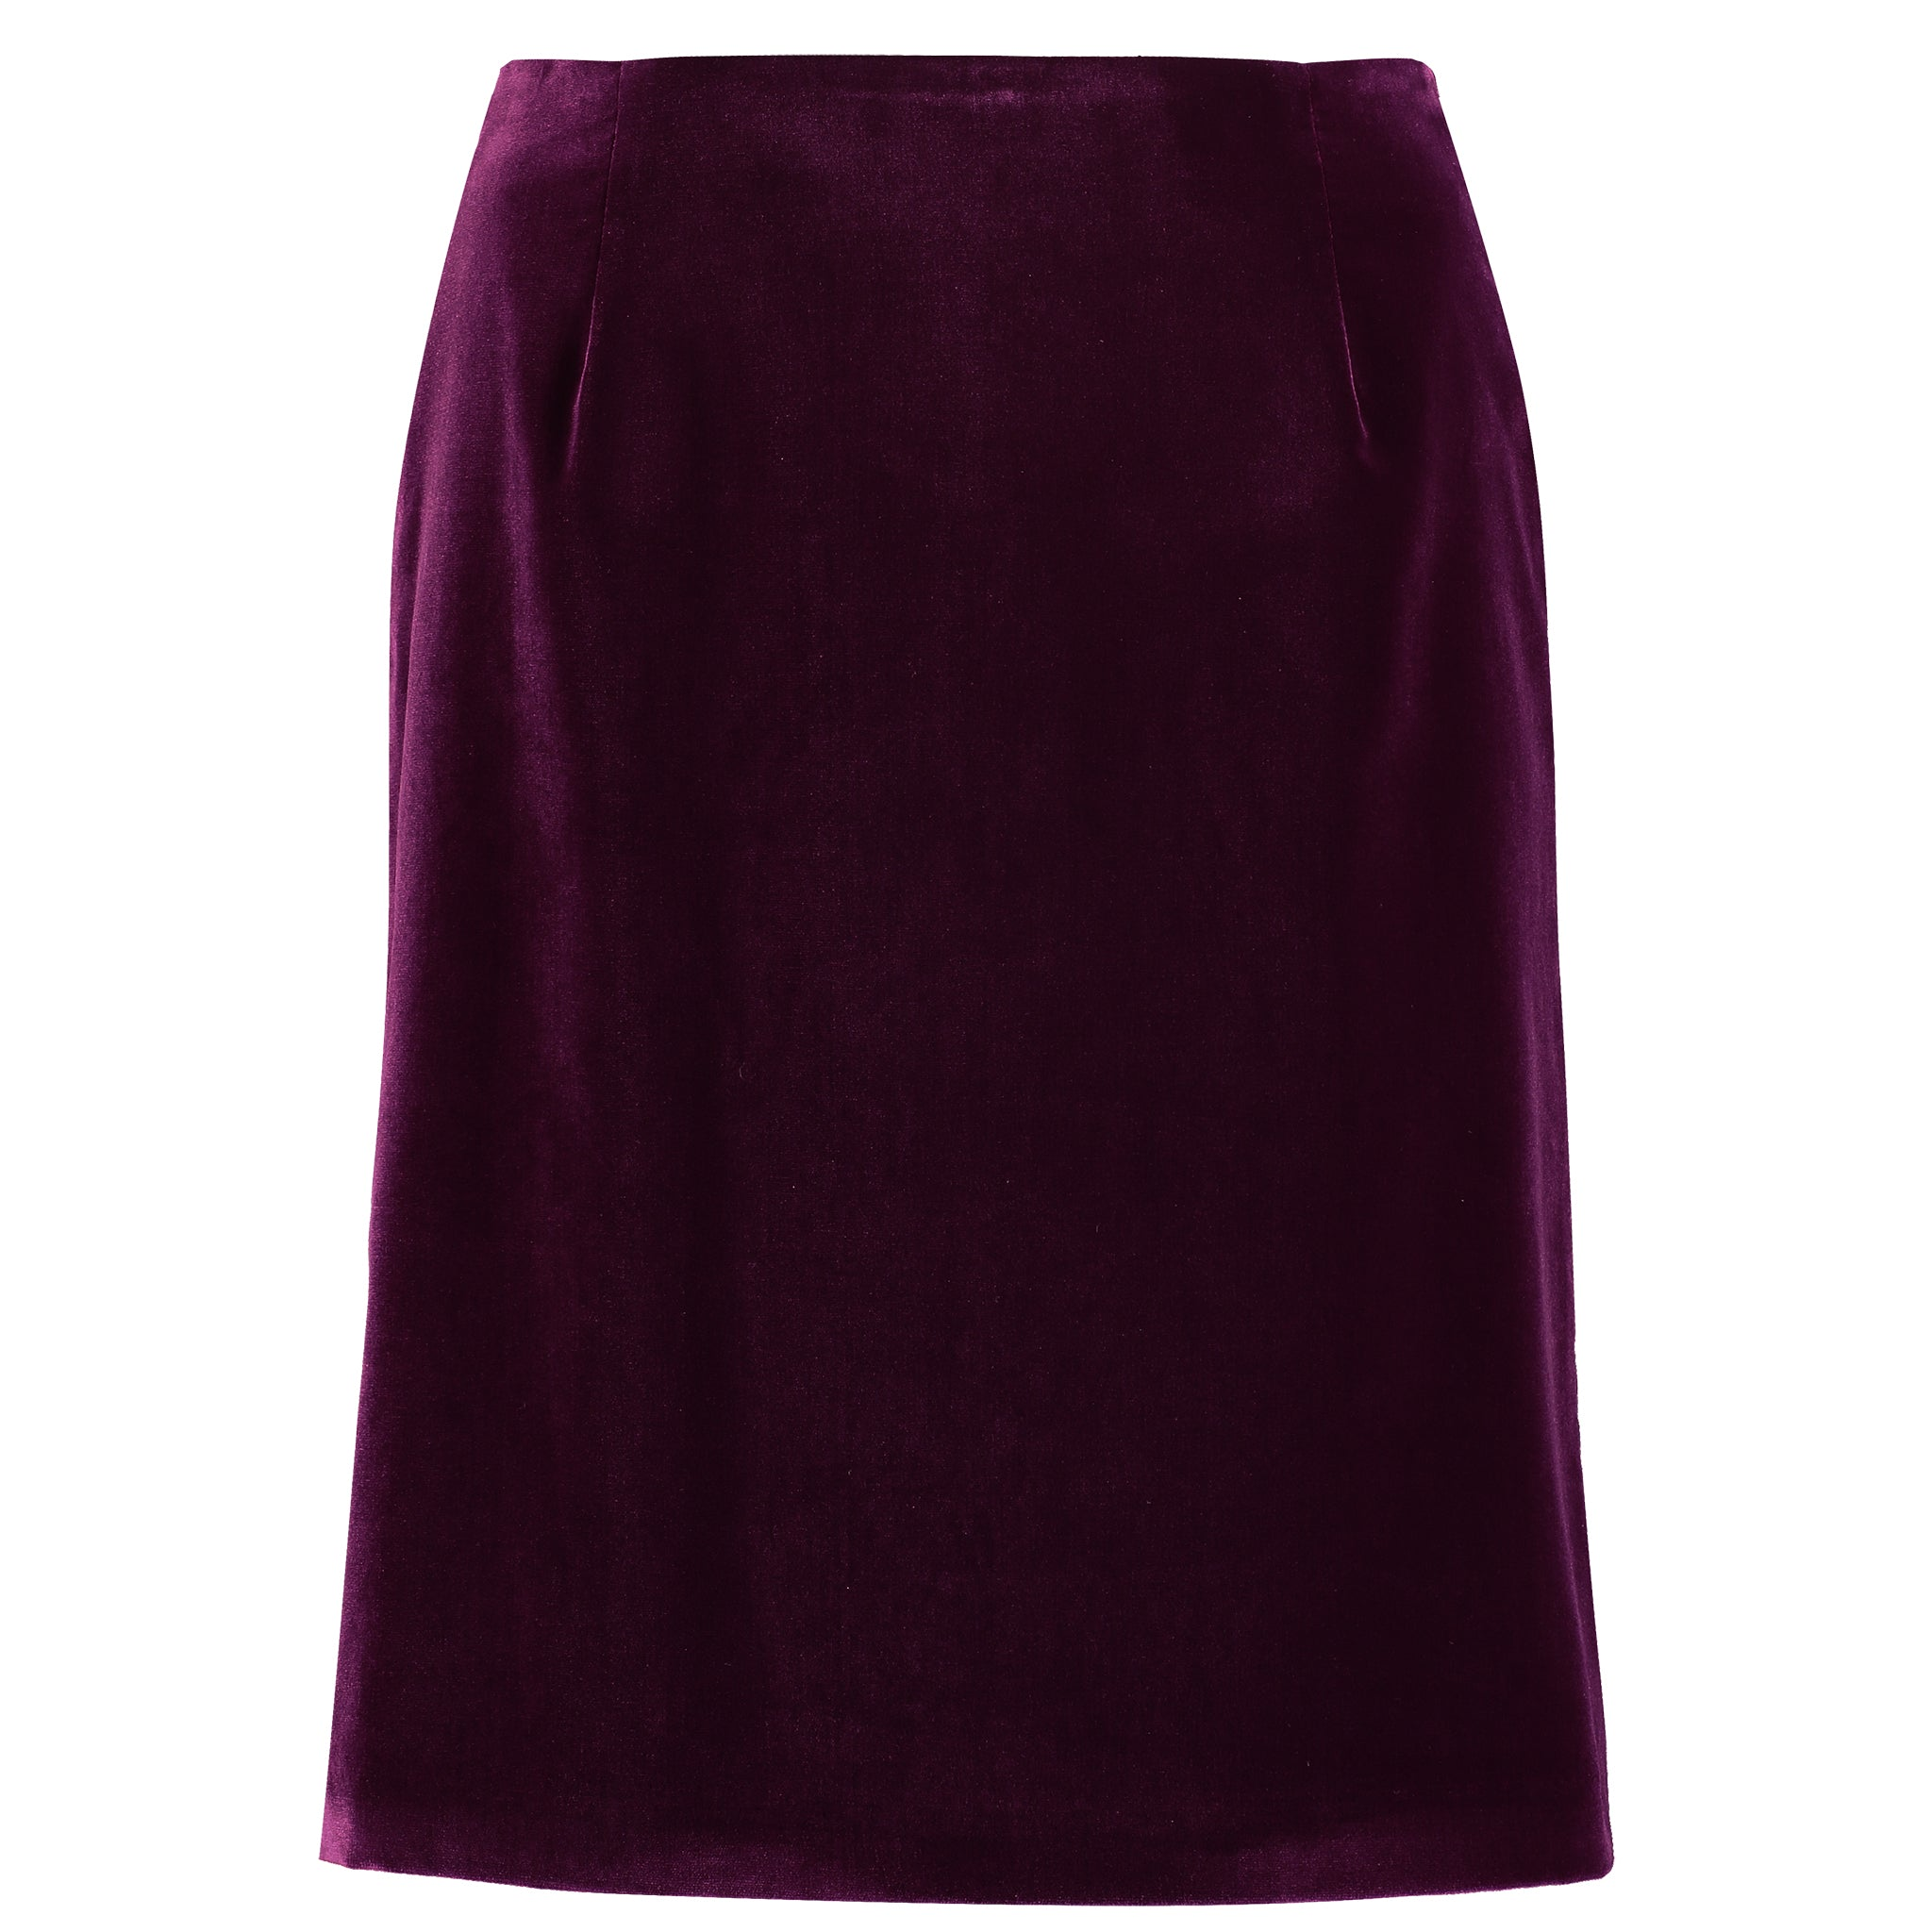 Landmark Velvet Berwick Skirt for Ladies in Merlot Velvet